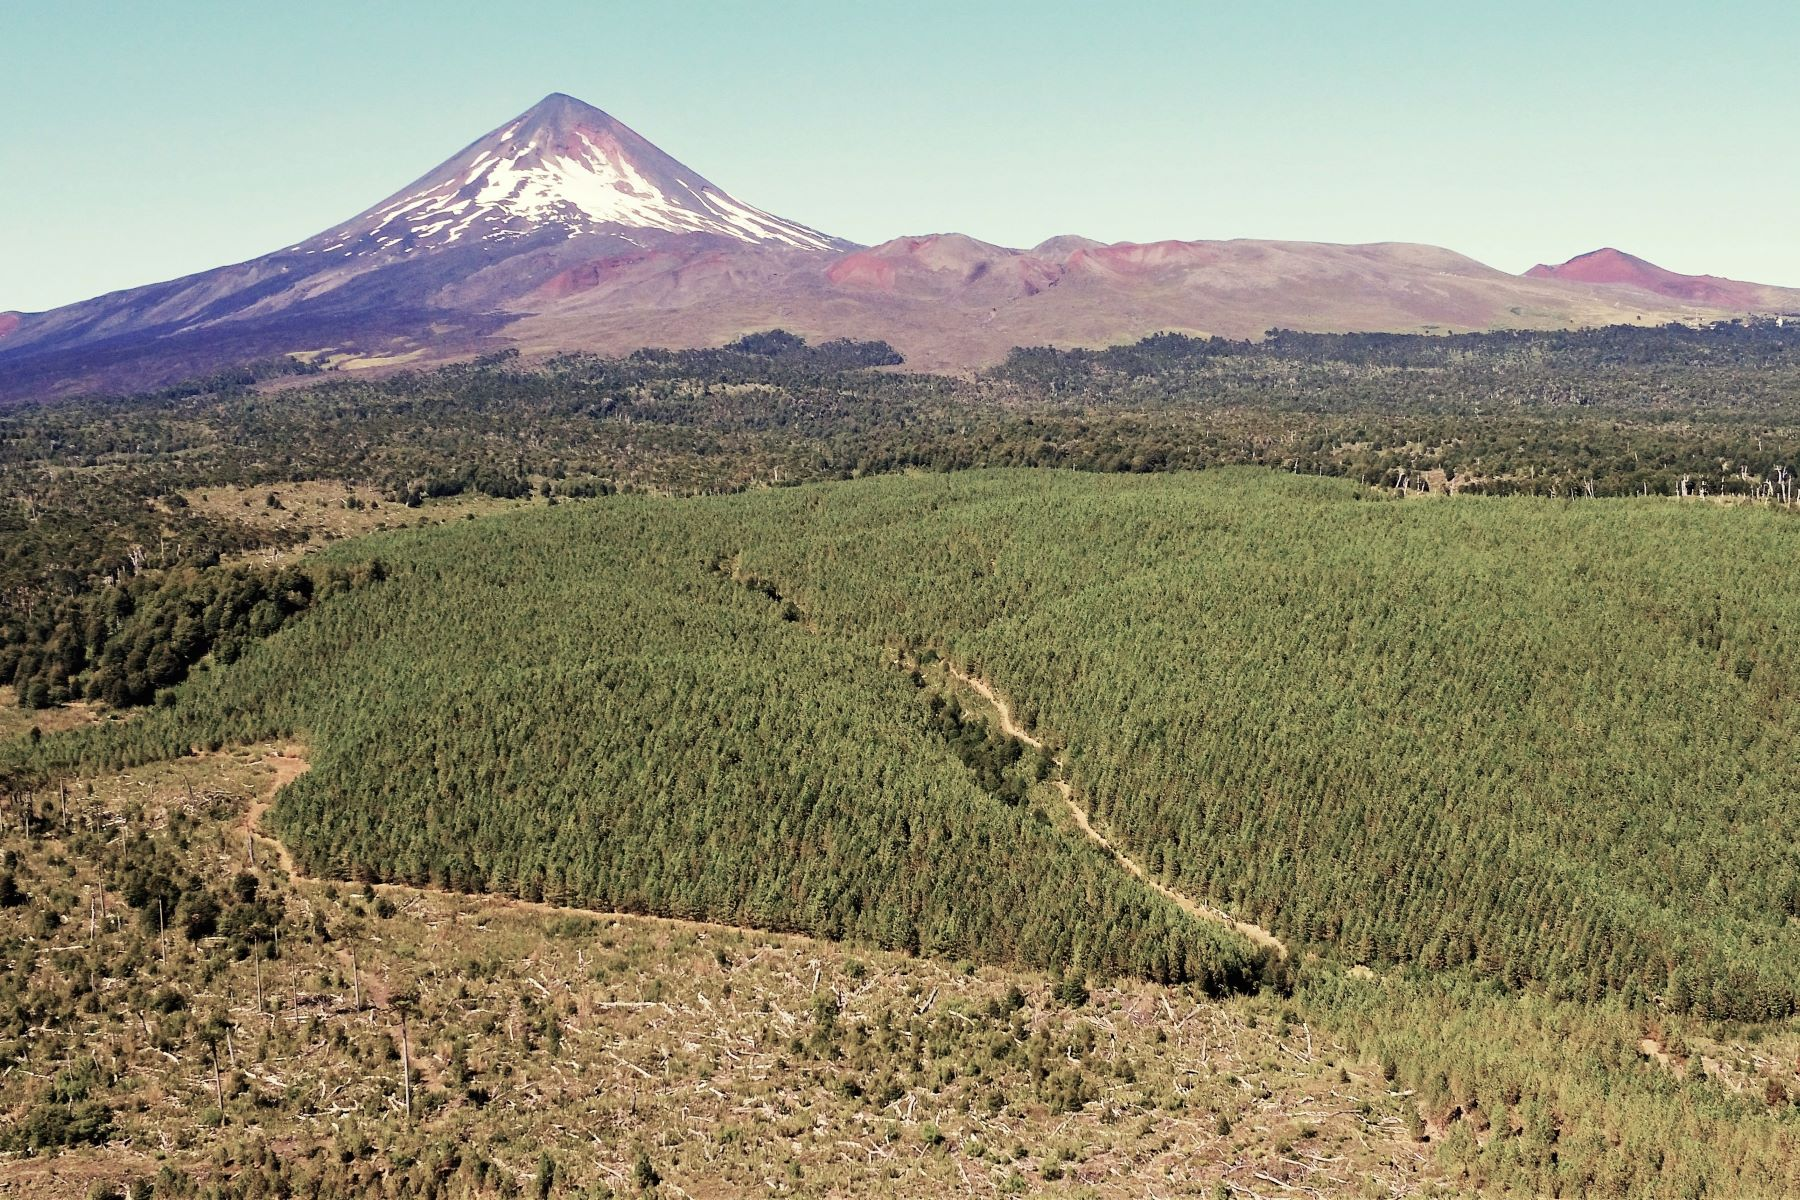 Farm and Ranch Properties for Sale at Fundo Araucarias - Forestry And Tourism Potential - Temuco / Chillán Temuco, La Araucania Chile